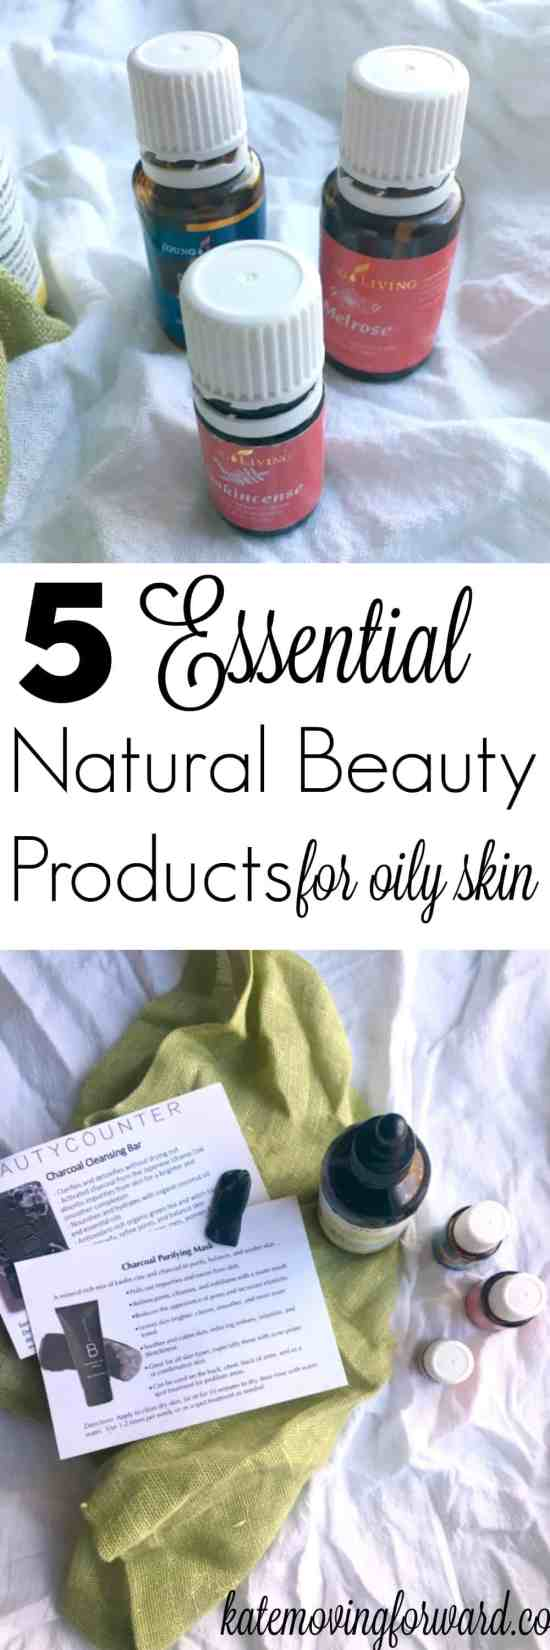 natural beauty - all natural skincare - oil cleansing - jojoba oil - essential oils for skin - oily skin natural care